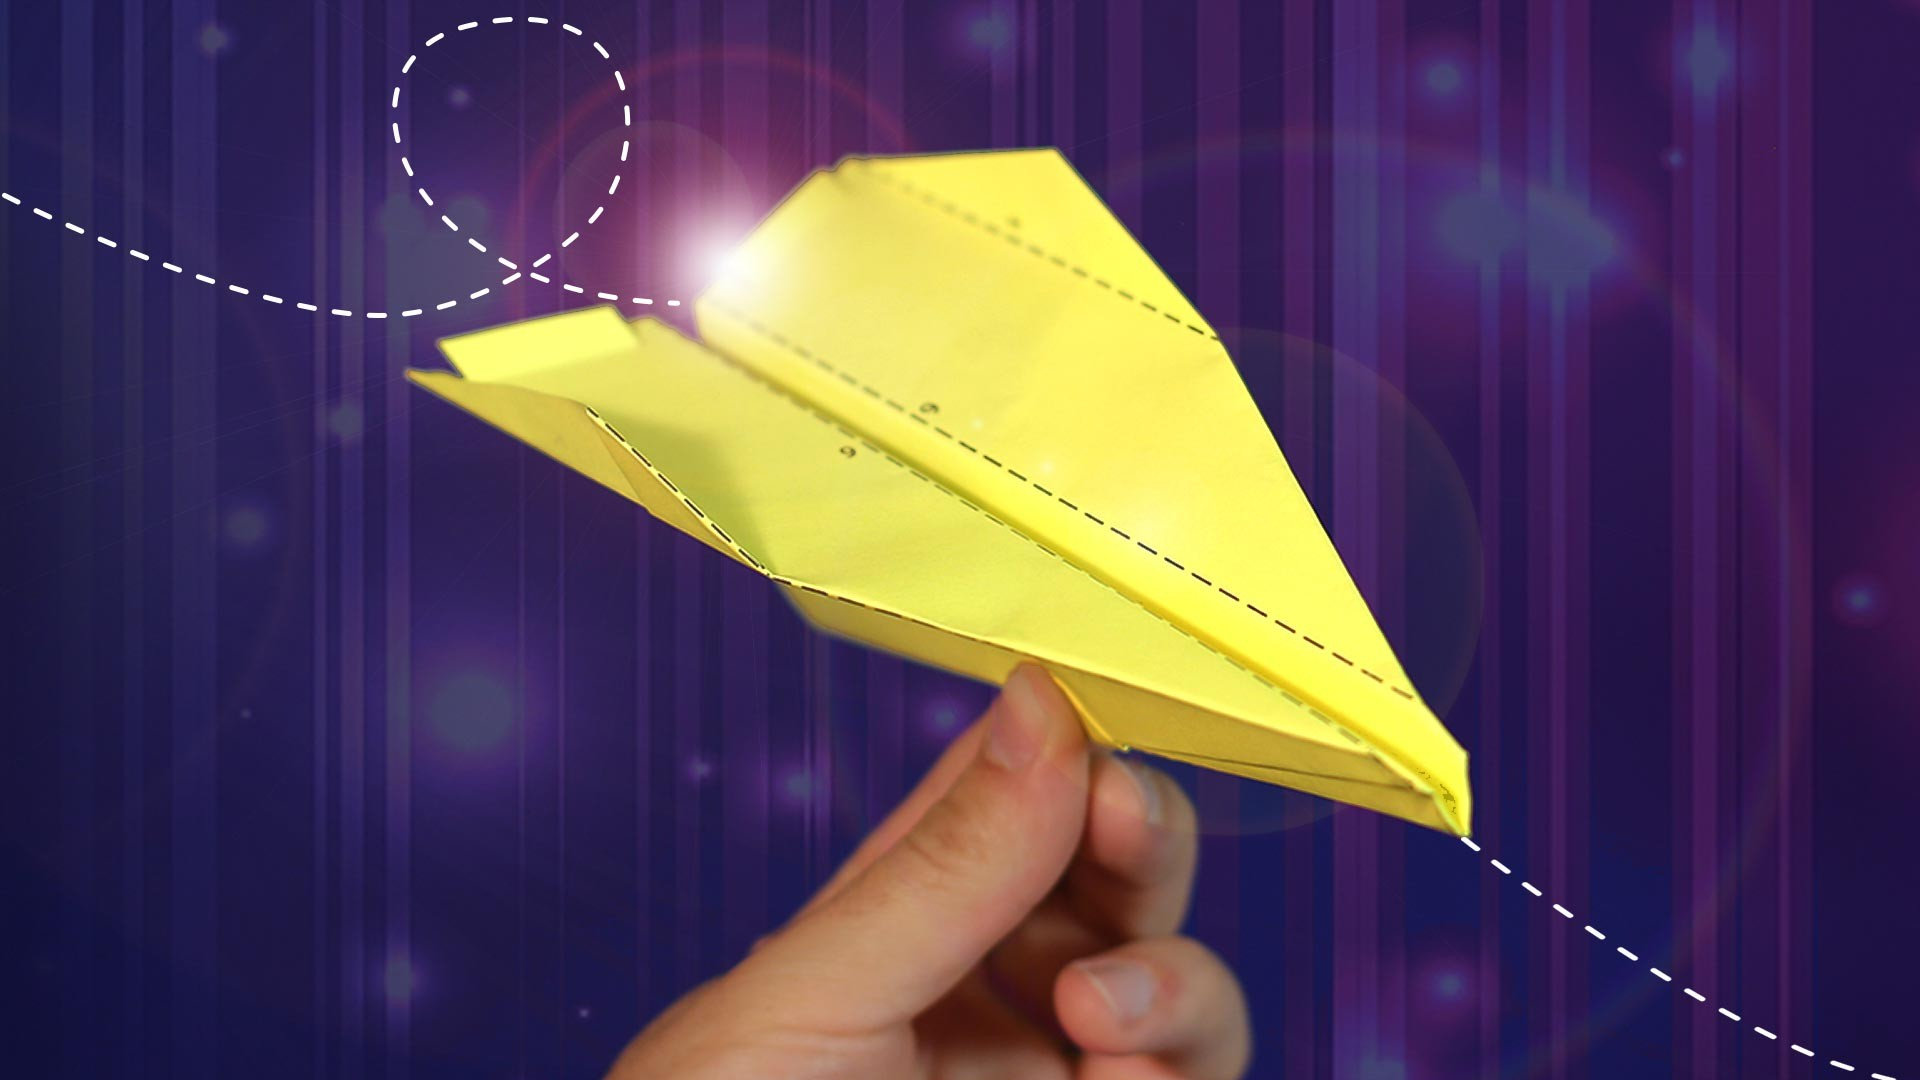 Paper Airplane wallpaper picture